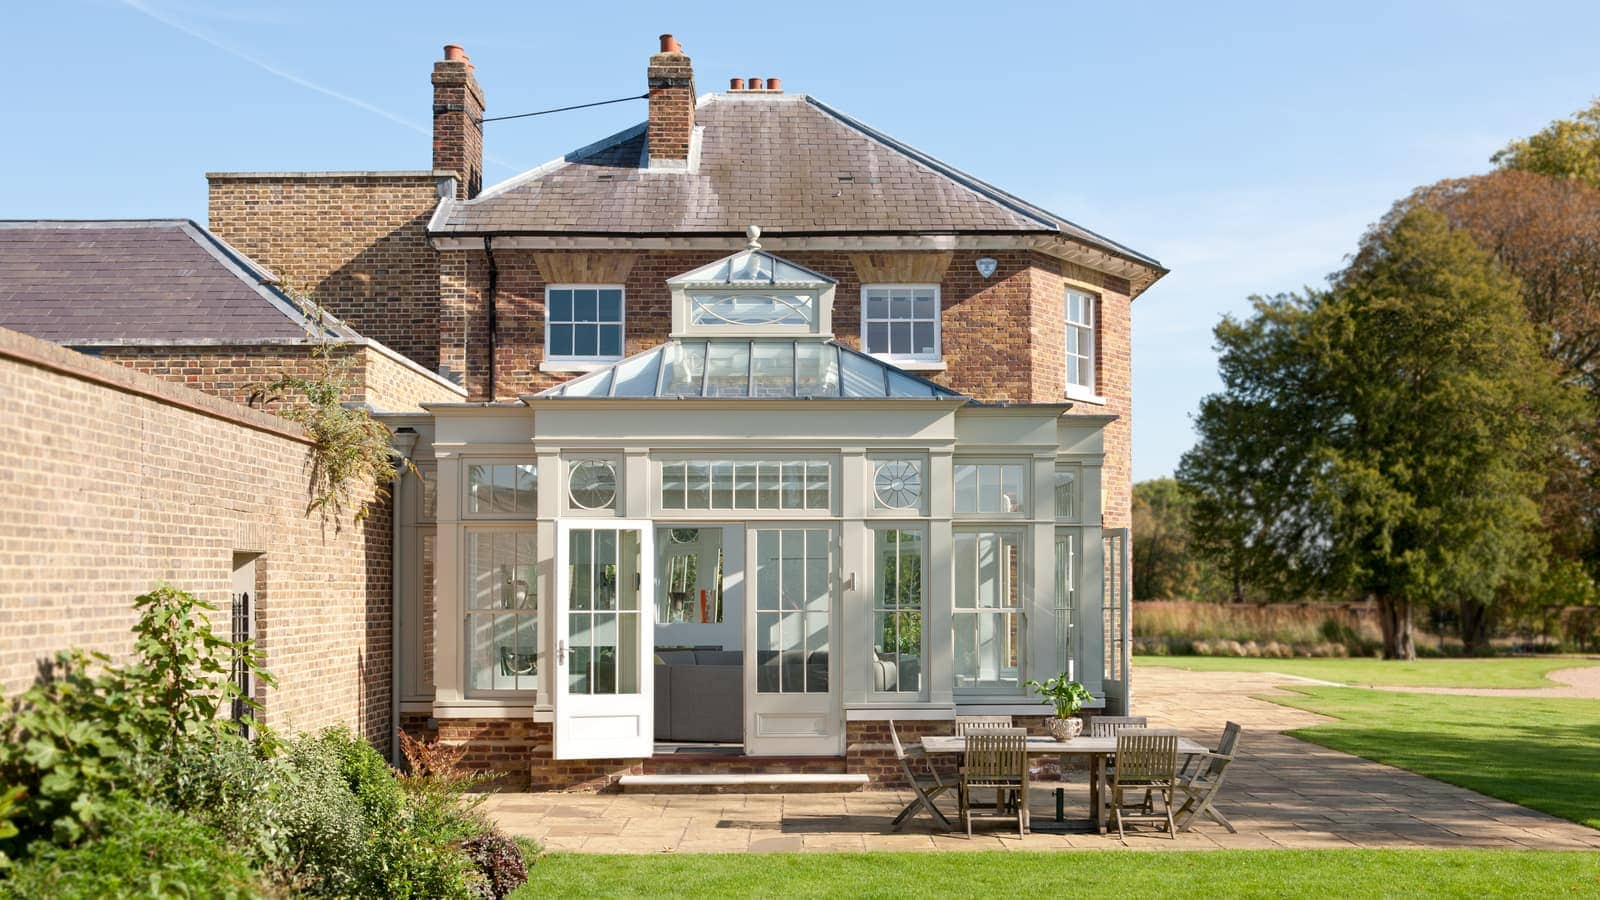 Stunning orangery featuring a turret topped roof lantern